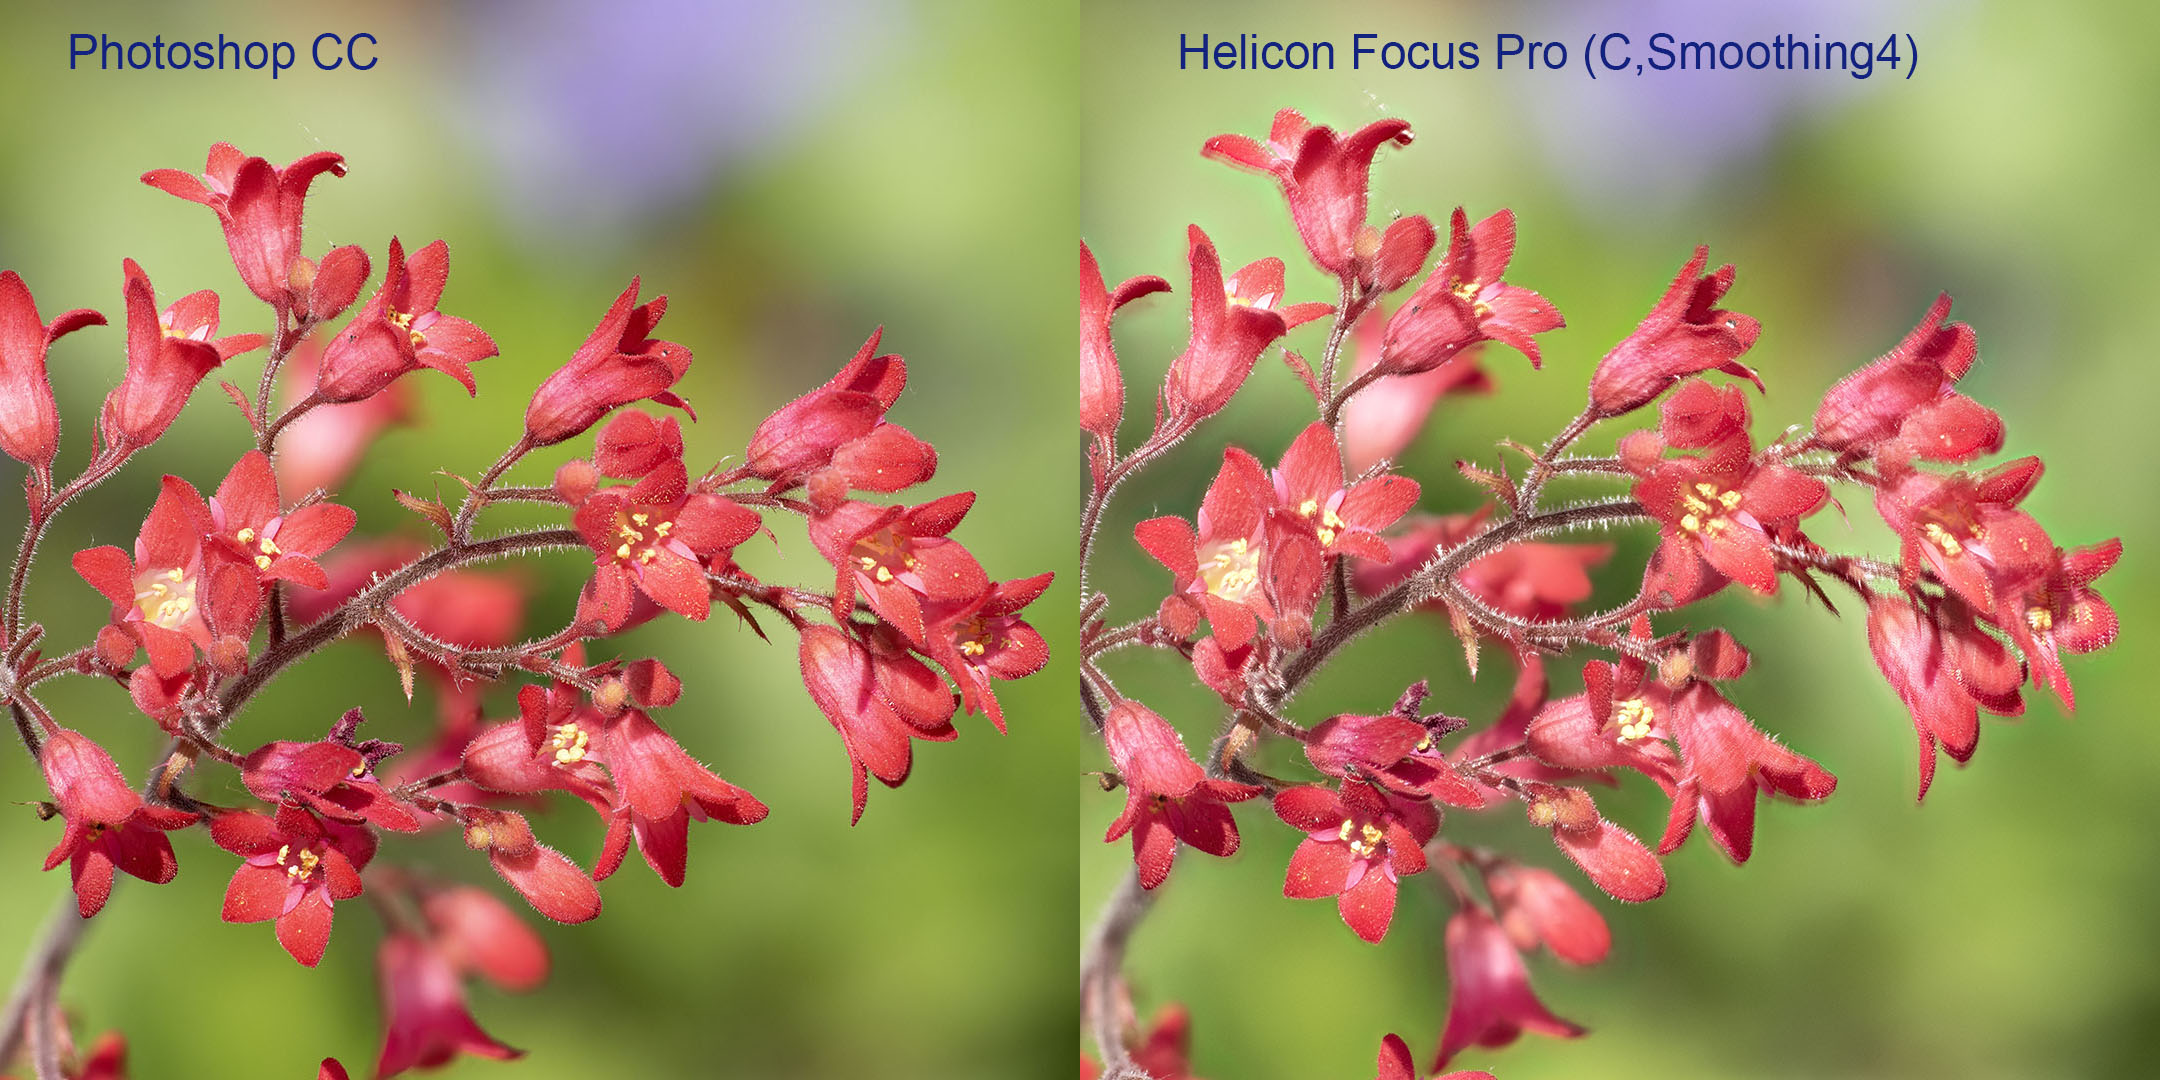 Vergleich Photoshop-Helicon Focus Pro